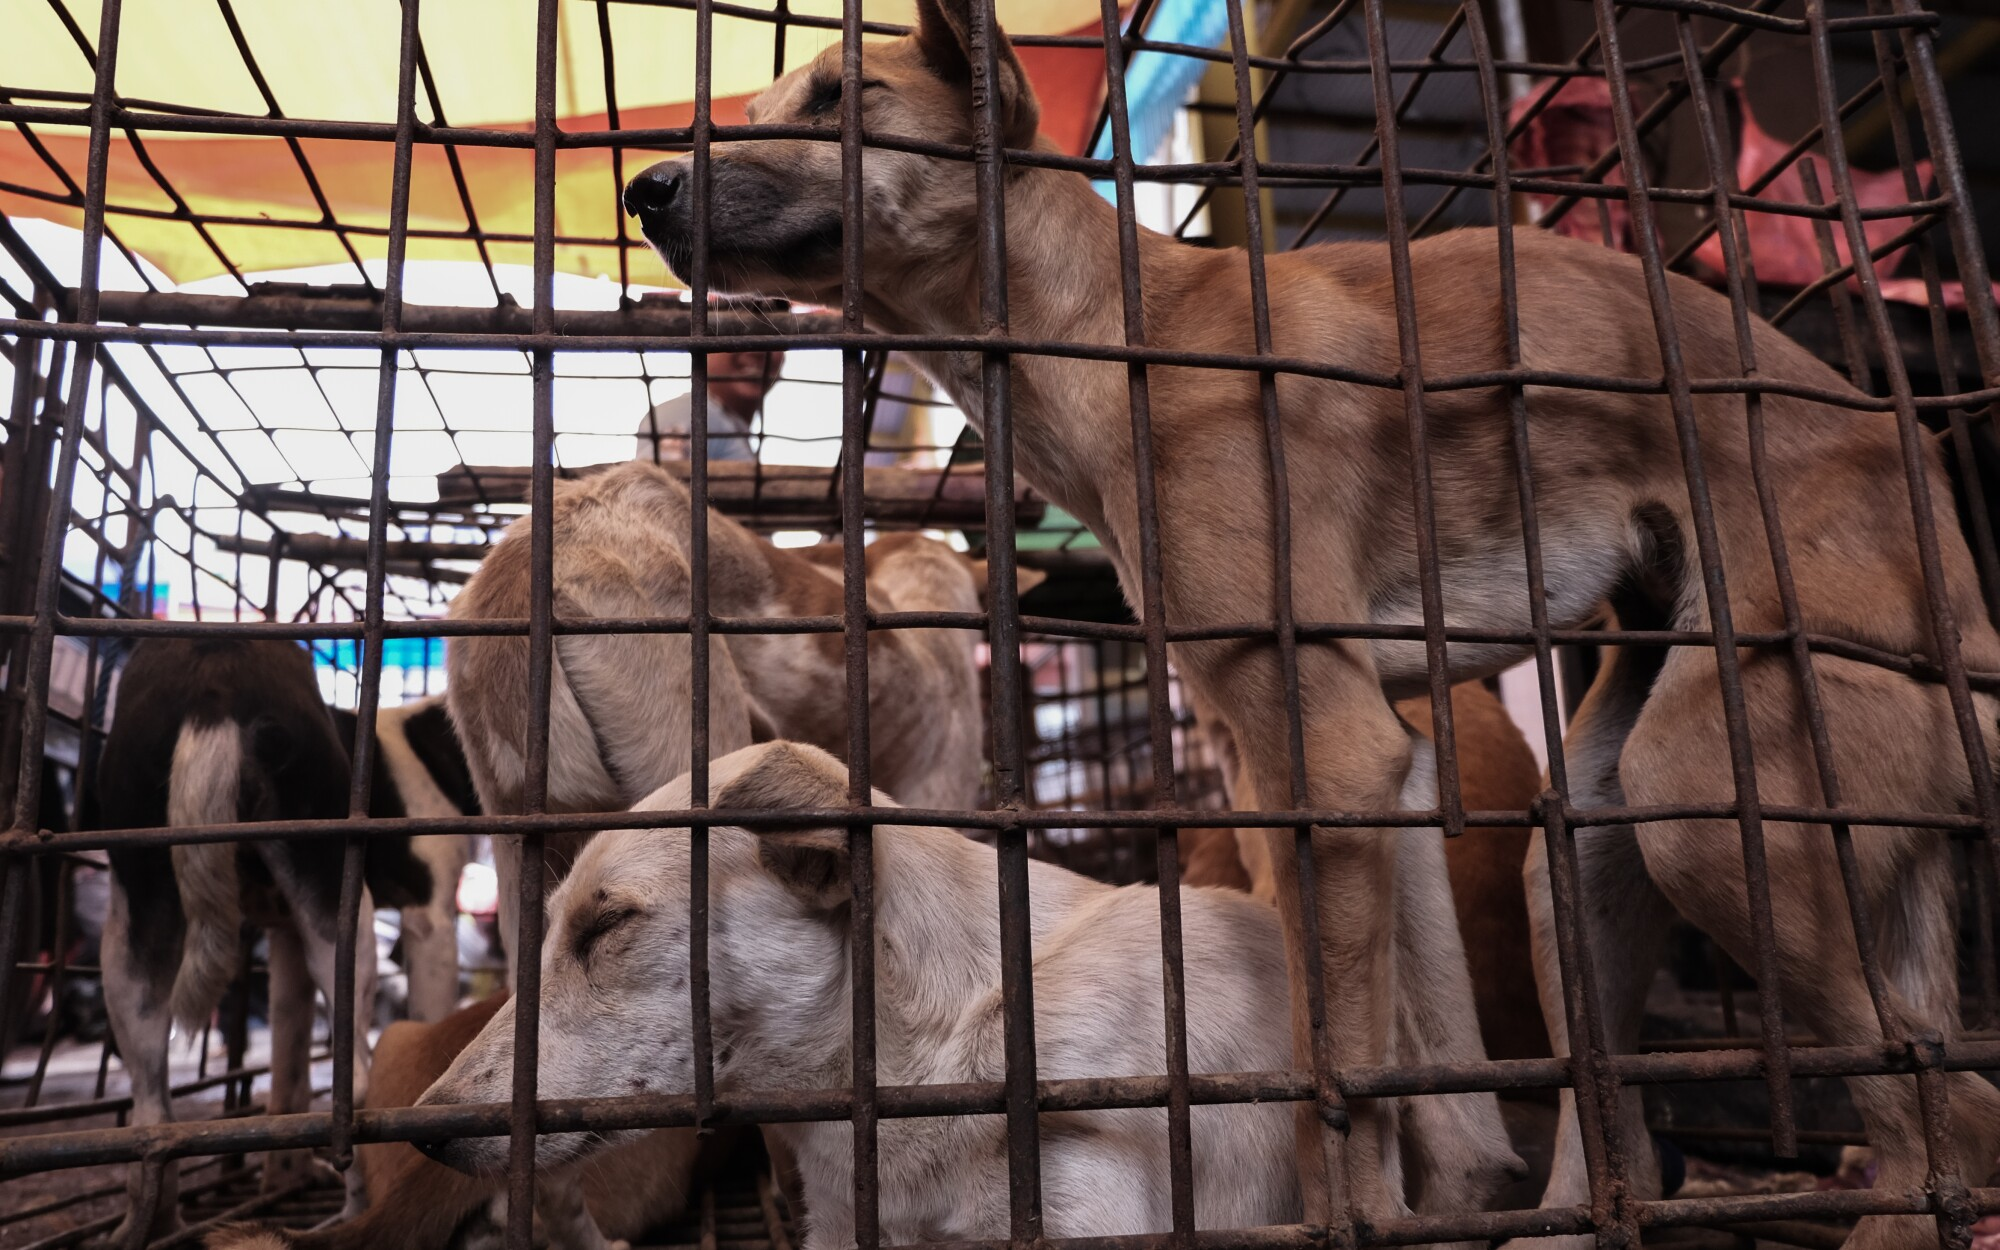 Dogs are held in an iron cage at a market in Tomohon, Indonesia